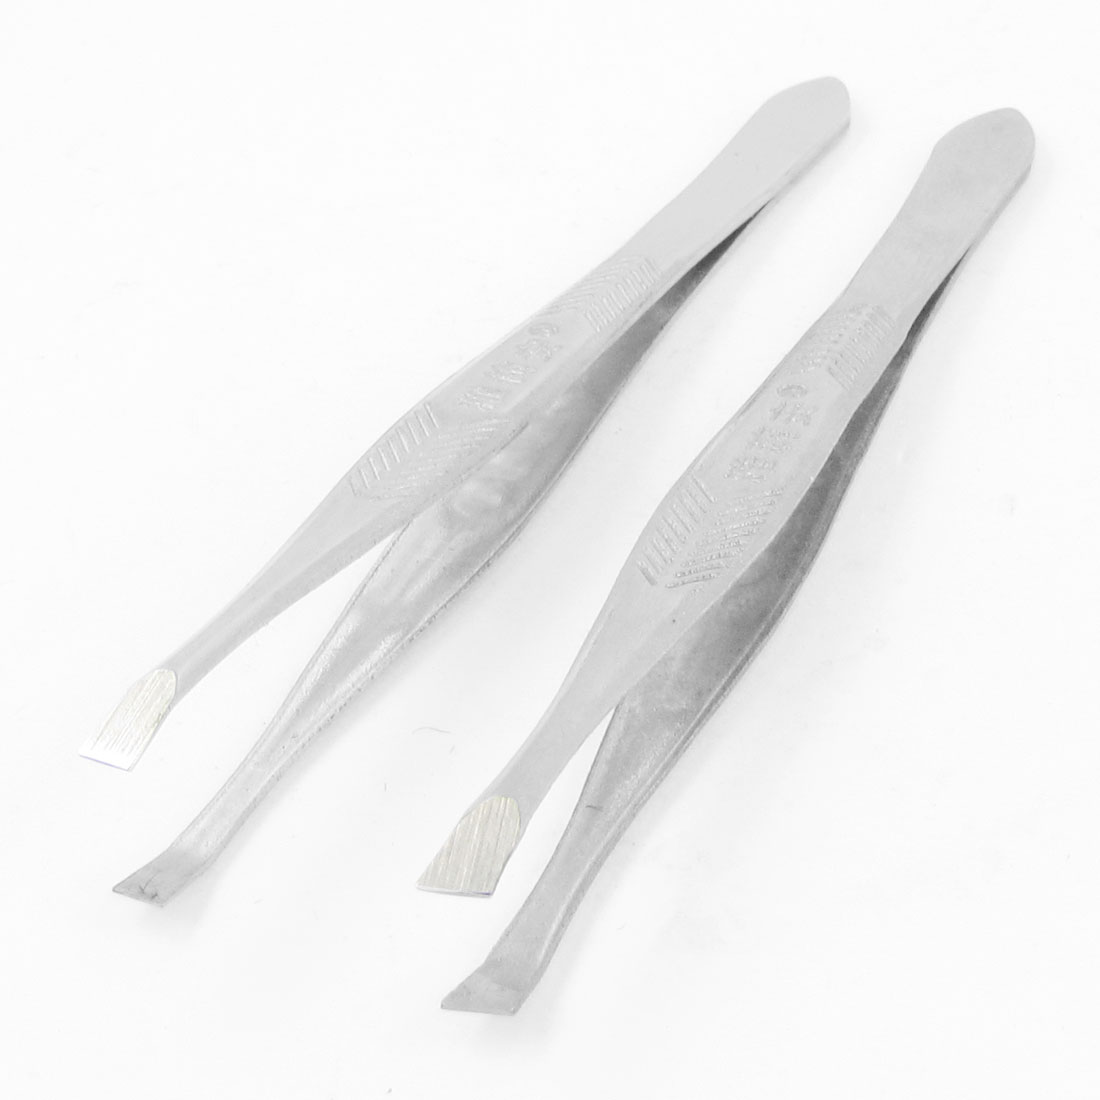 Slanted Tip Plain End Eyebrow Tweezers Cosmetic Tool Silver Tone 2pcs